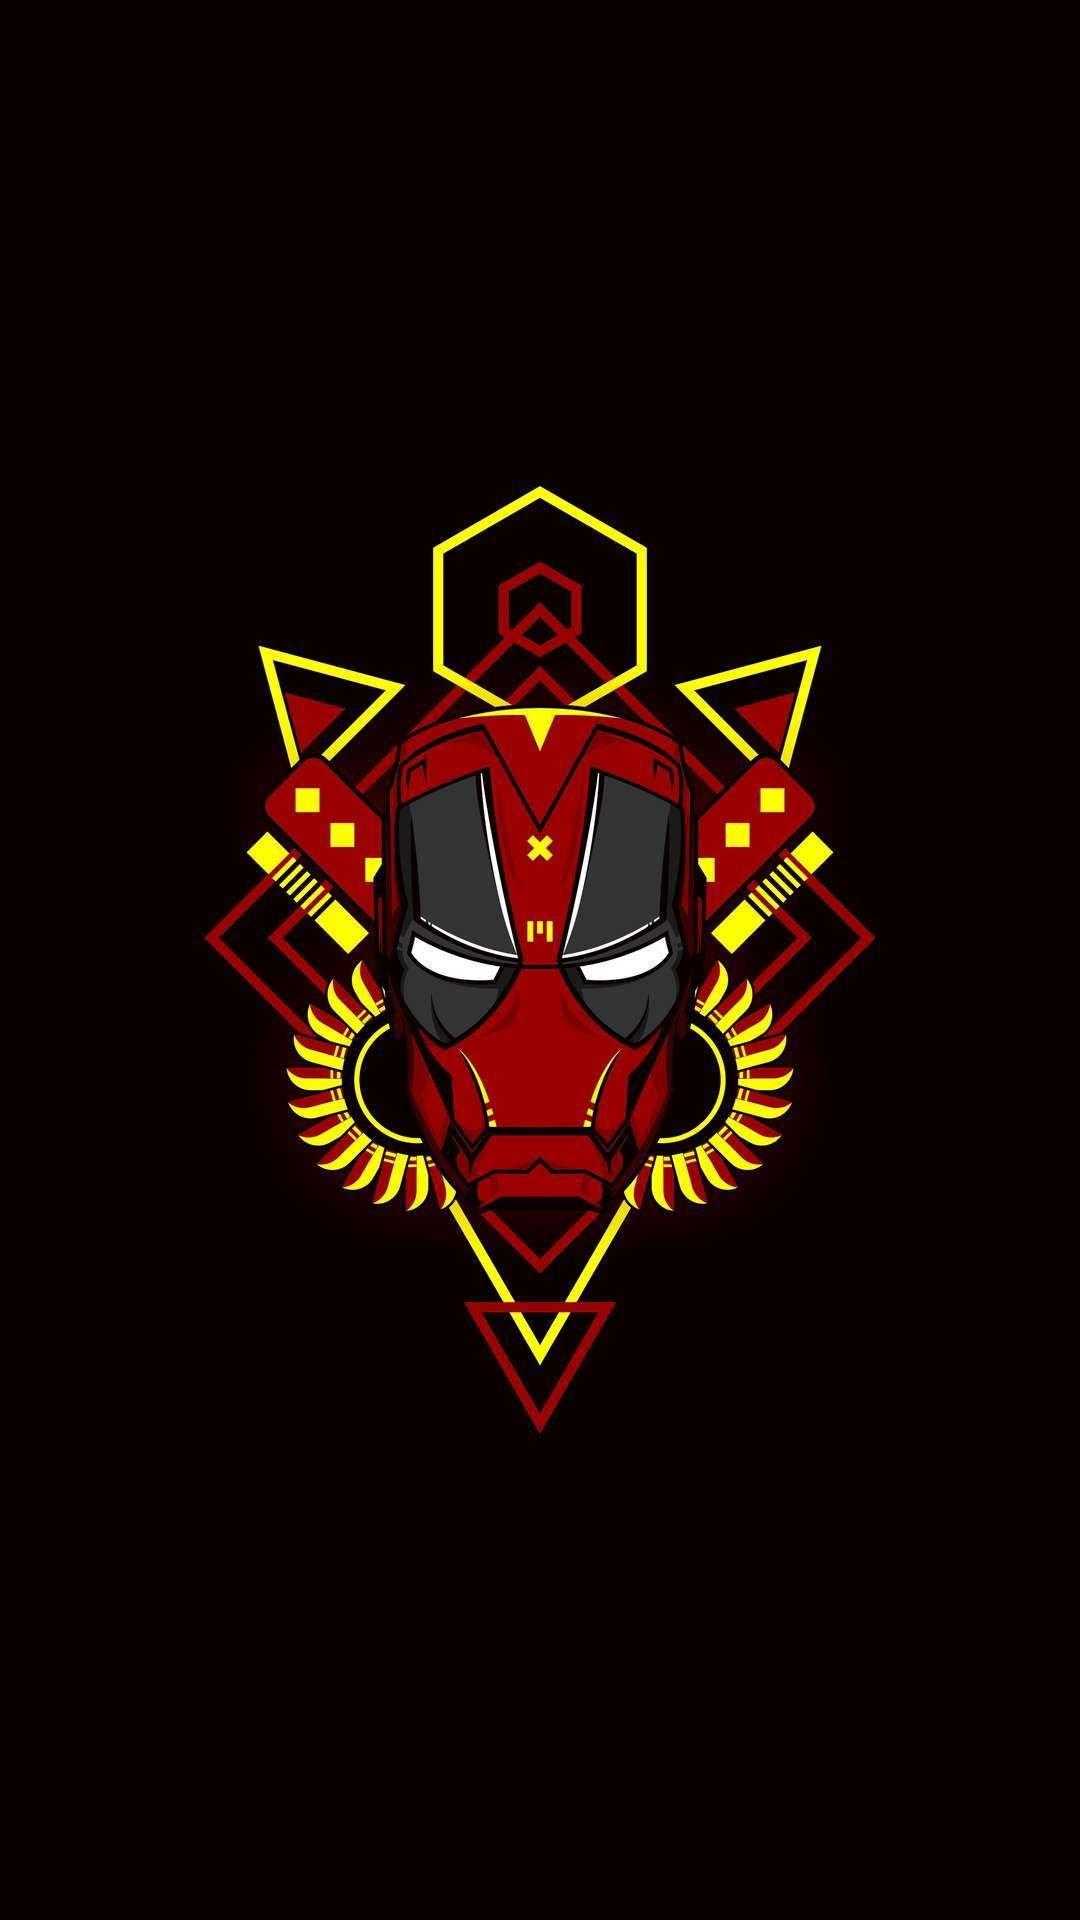 Download Hd Movie Wallpapers Poster Wallpaper Hd Iphone Desktop Popular Marvel Dc Downl Deadpool Wallpaper Iphone Wallpaper Iphone Wallpaper Glitter